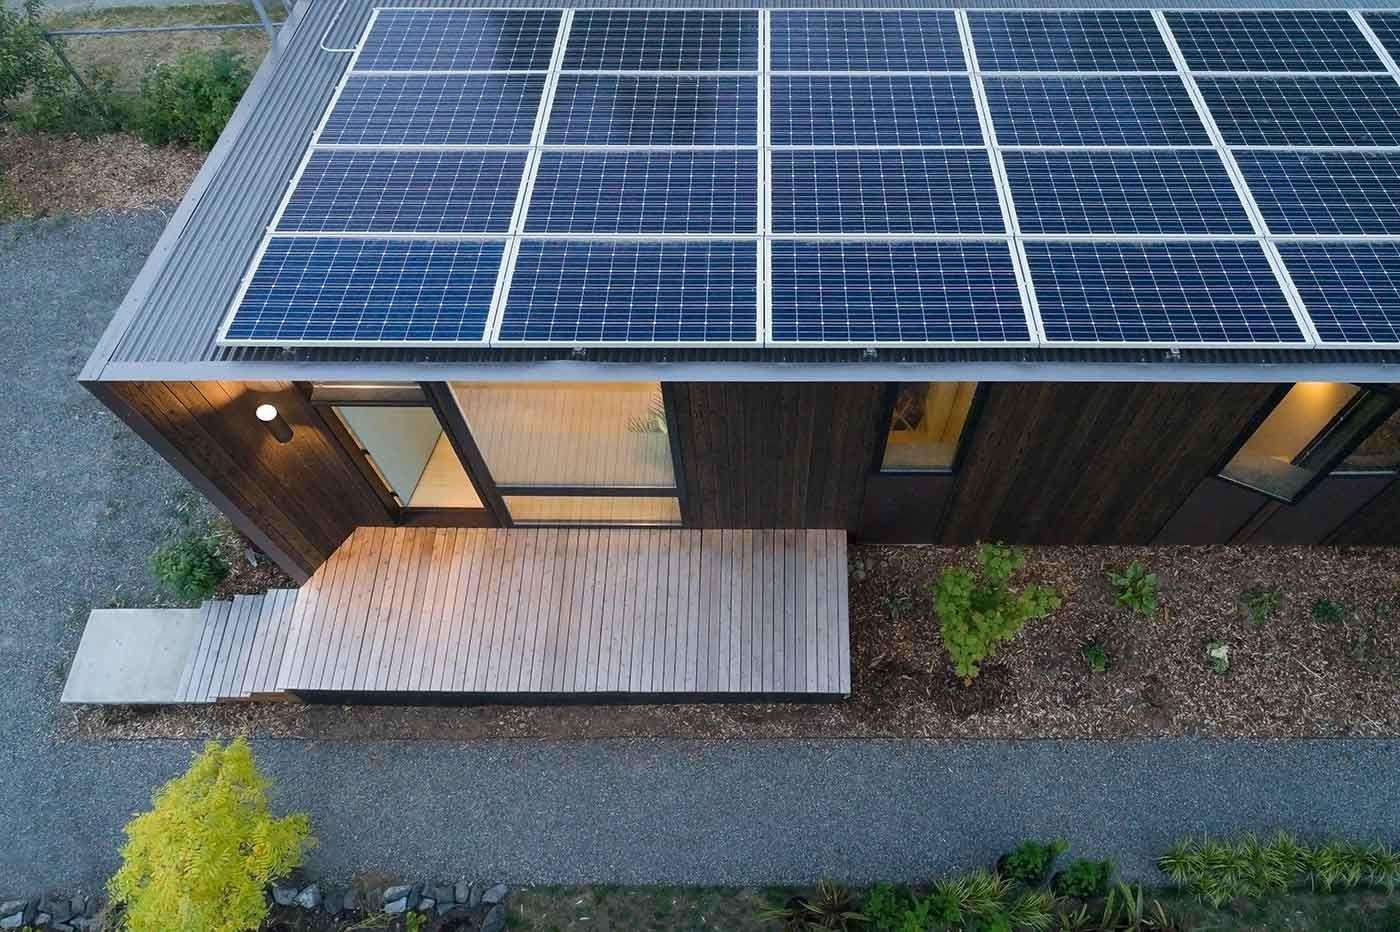 Node Trillium Is The Carbon Negative Solar Powered Backyard Office Of Our Dreams Design Milk In 2020 Backyard Cottage Solar Panels Wood Siding Exterior